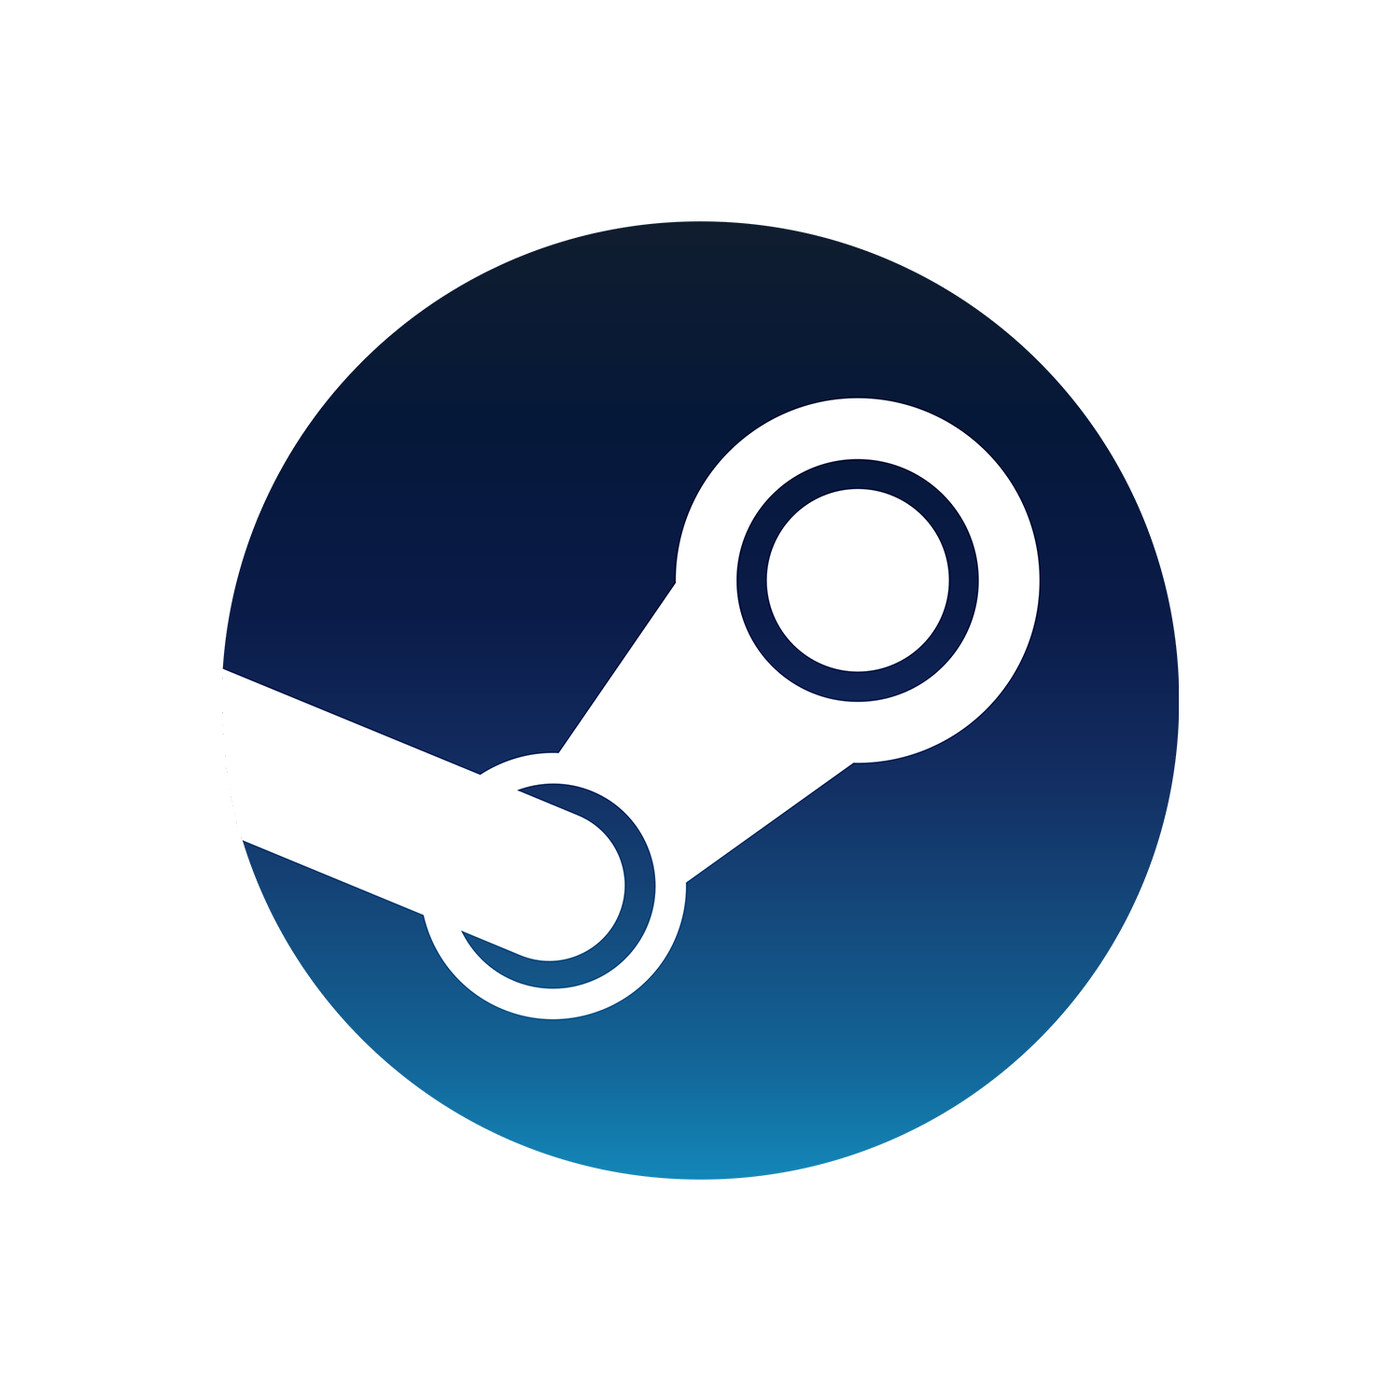 New Steam Link App Will Let Players Stream Games From Their Pcs To Android And Ios The Verge